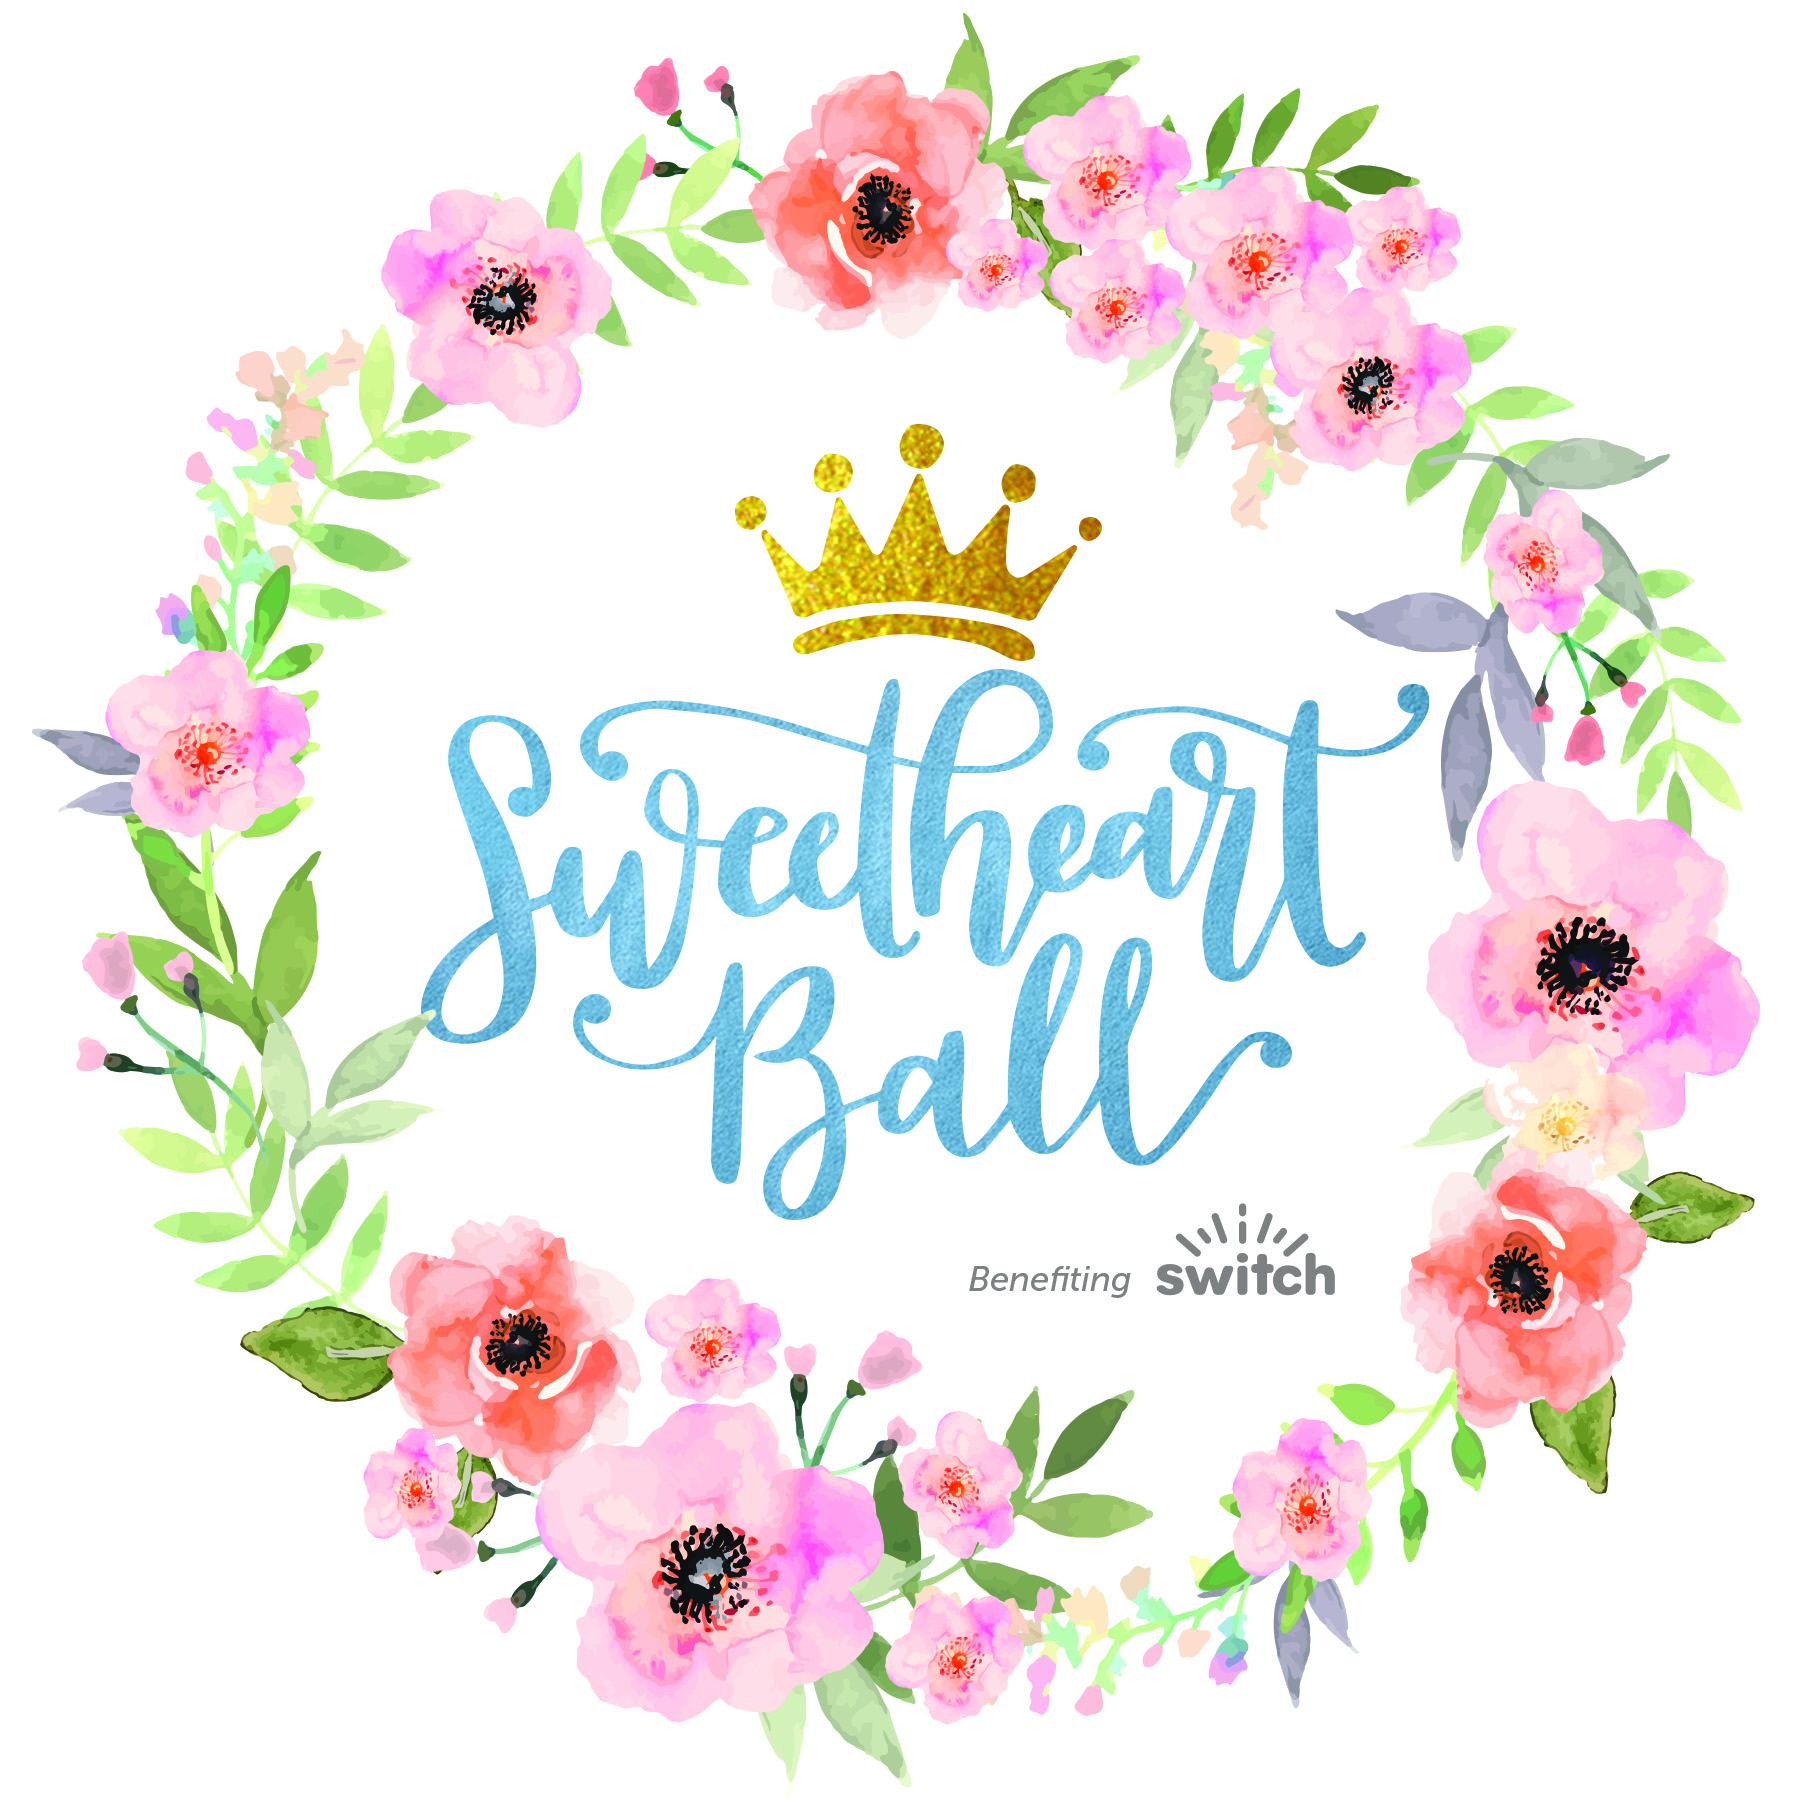 Switch_SweetheartBall_Logo.jpg